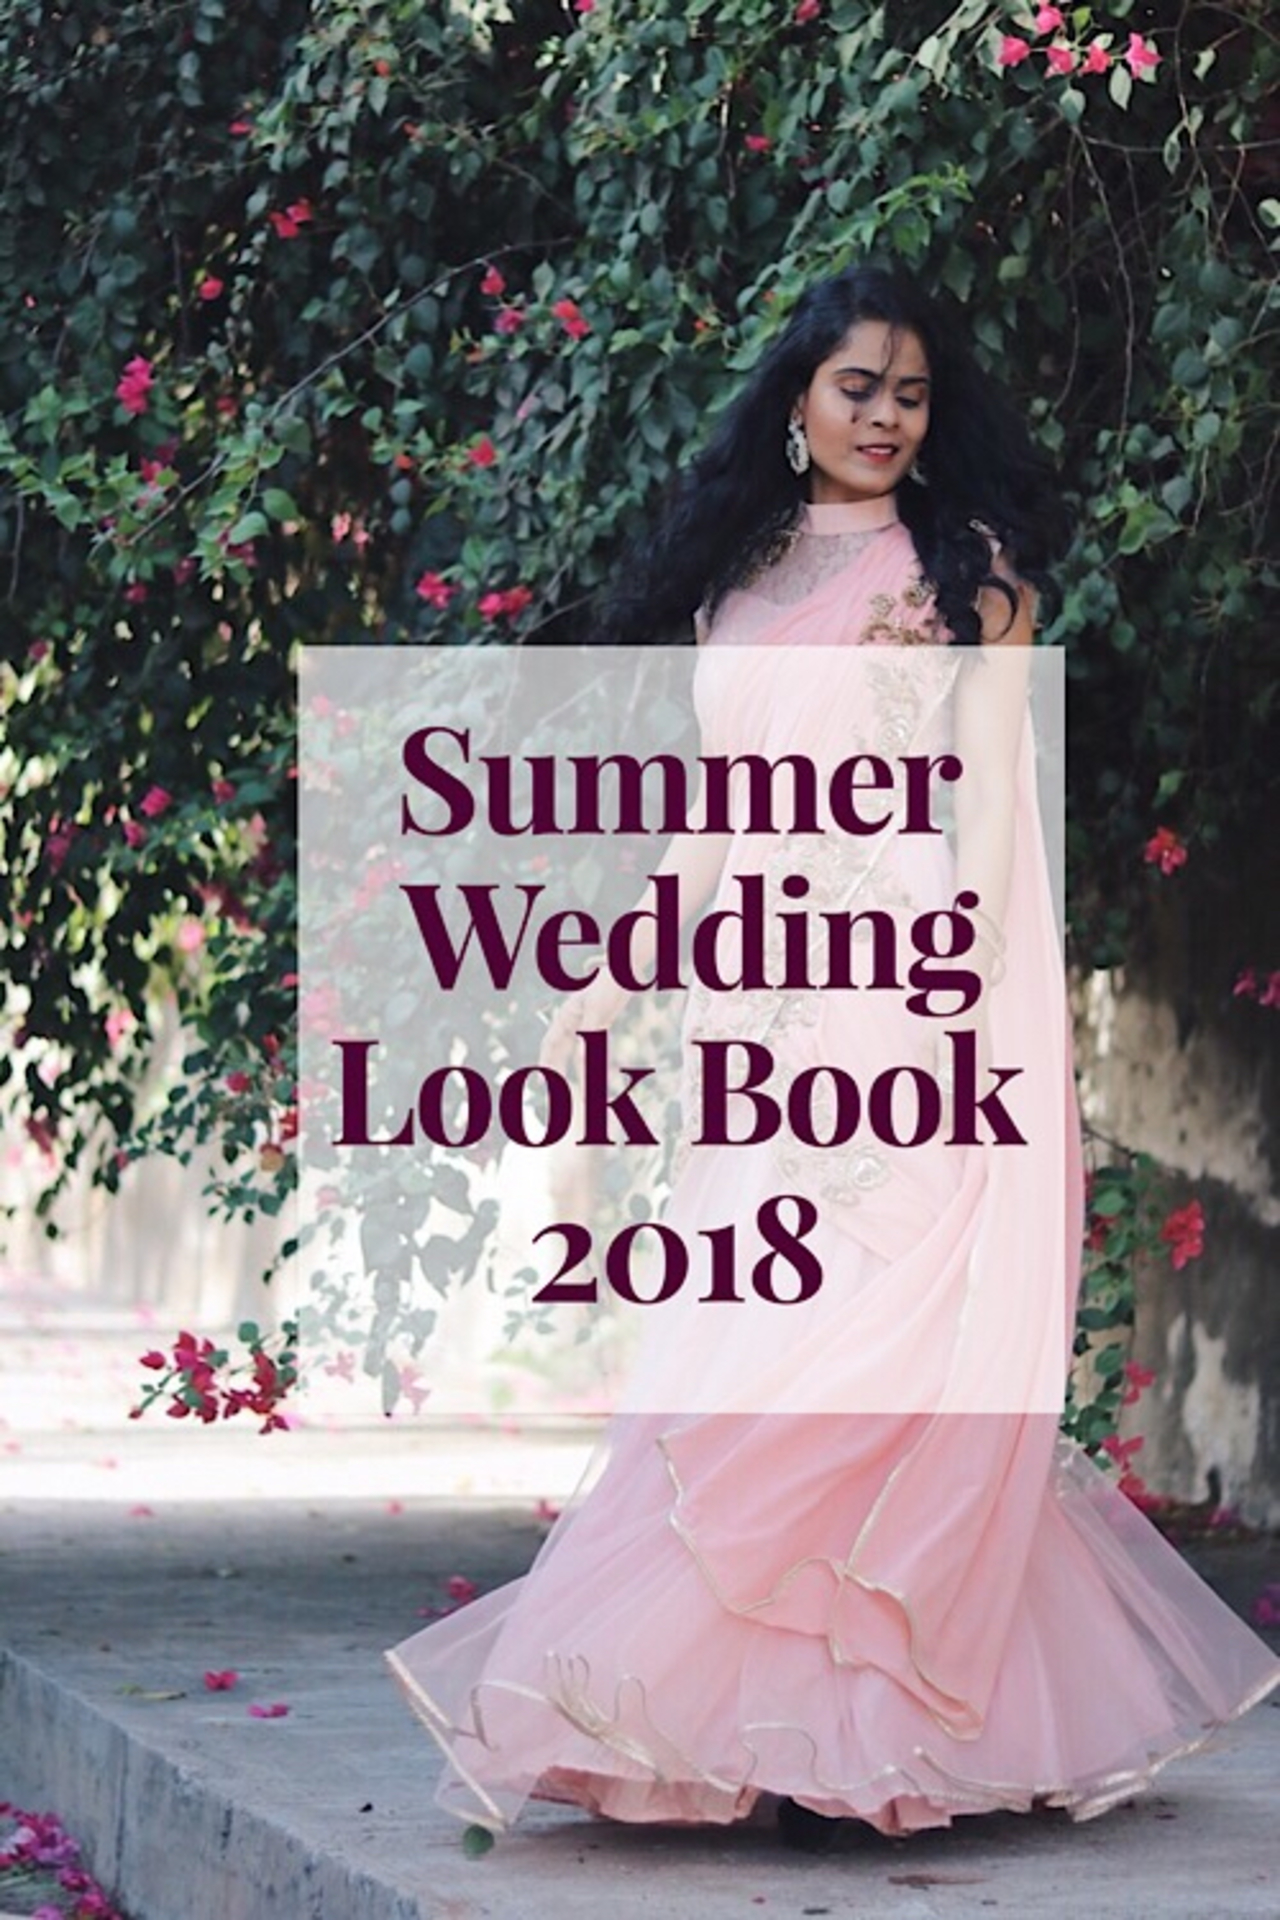 Summer  Wedding LookBook 2018 image